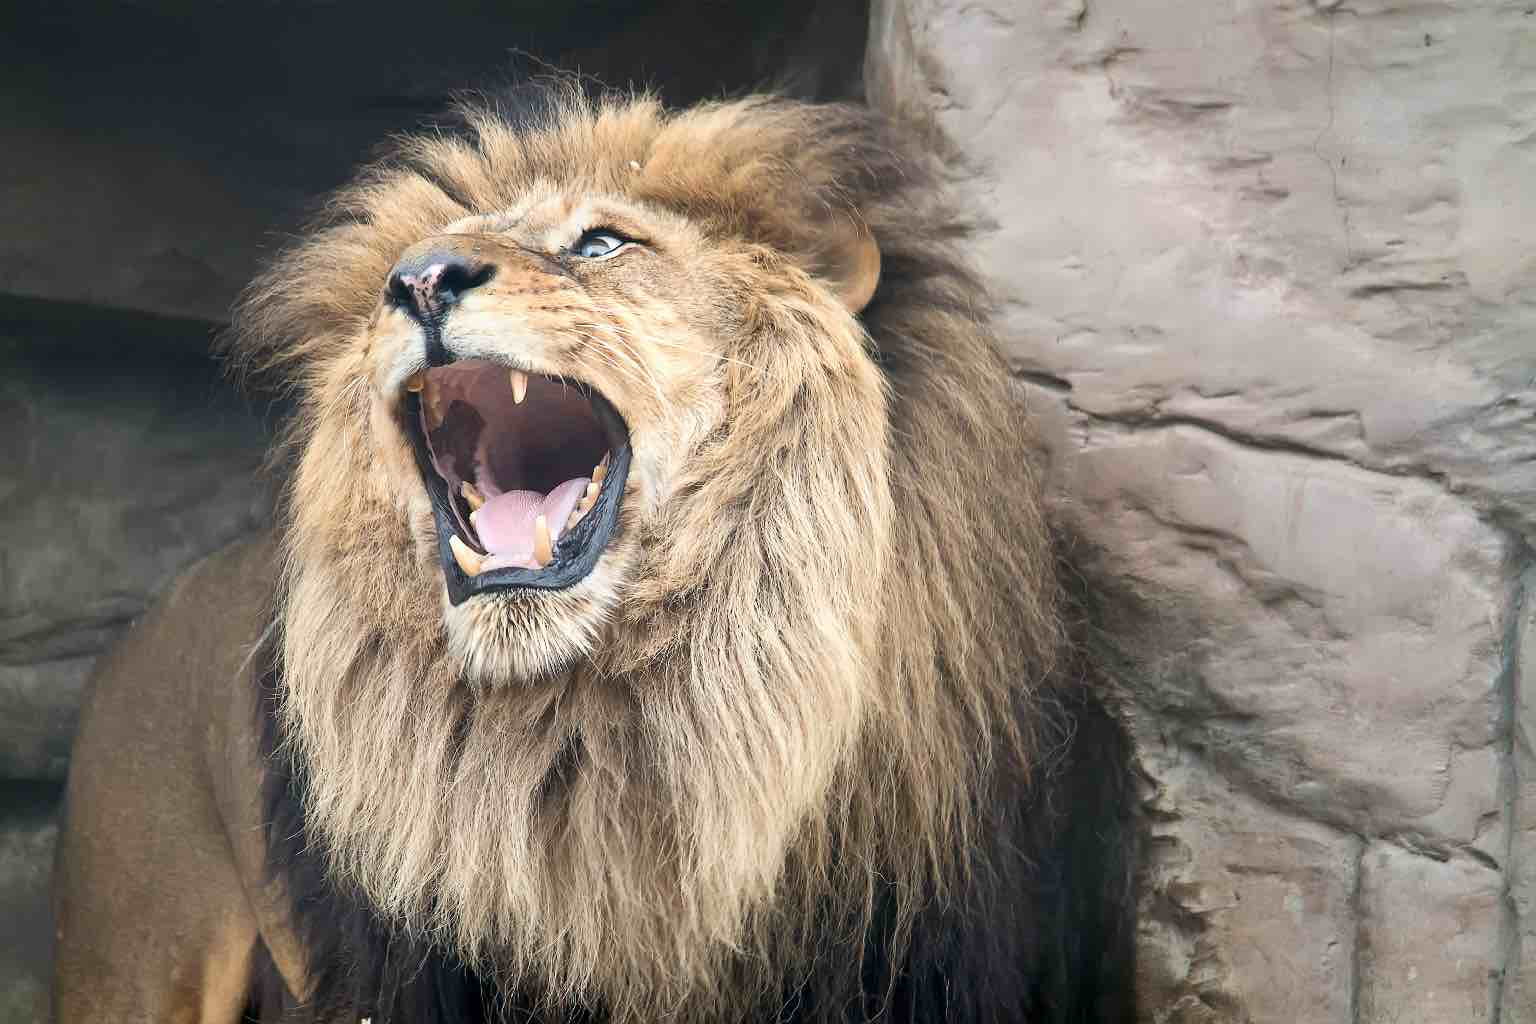 A picture of roaring adult lion